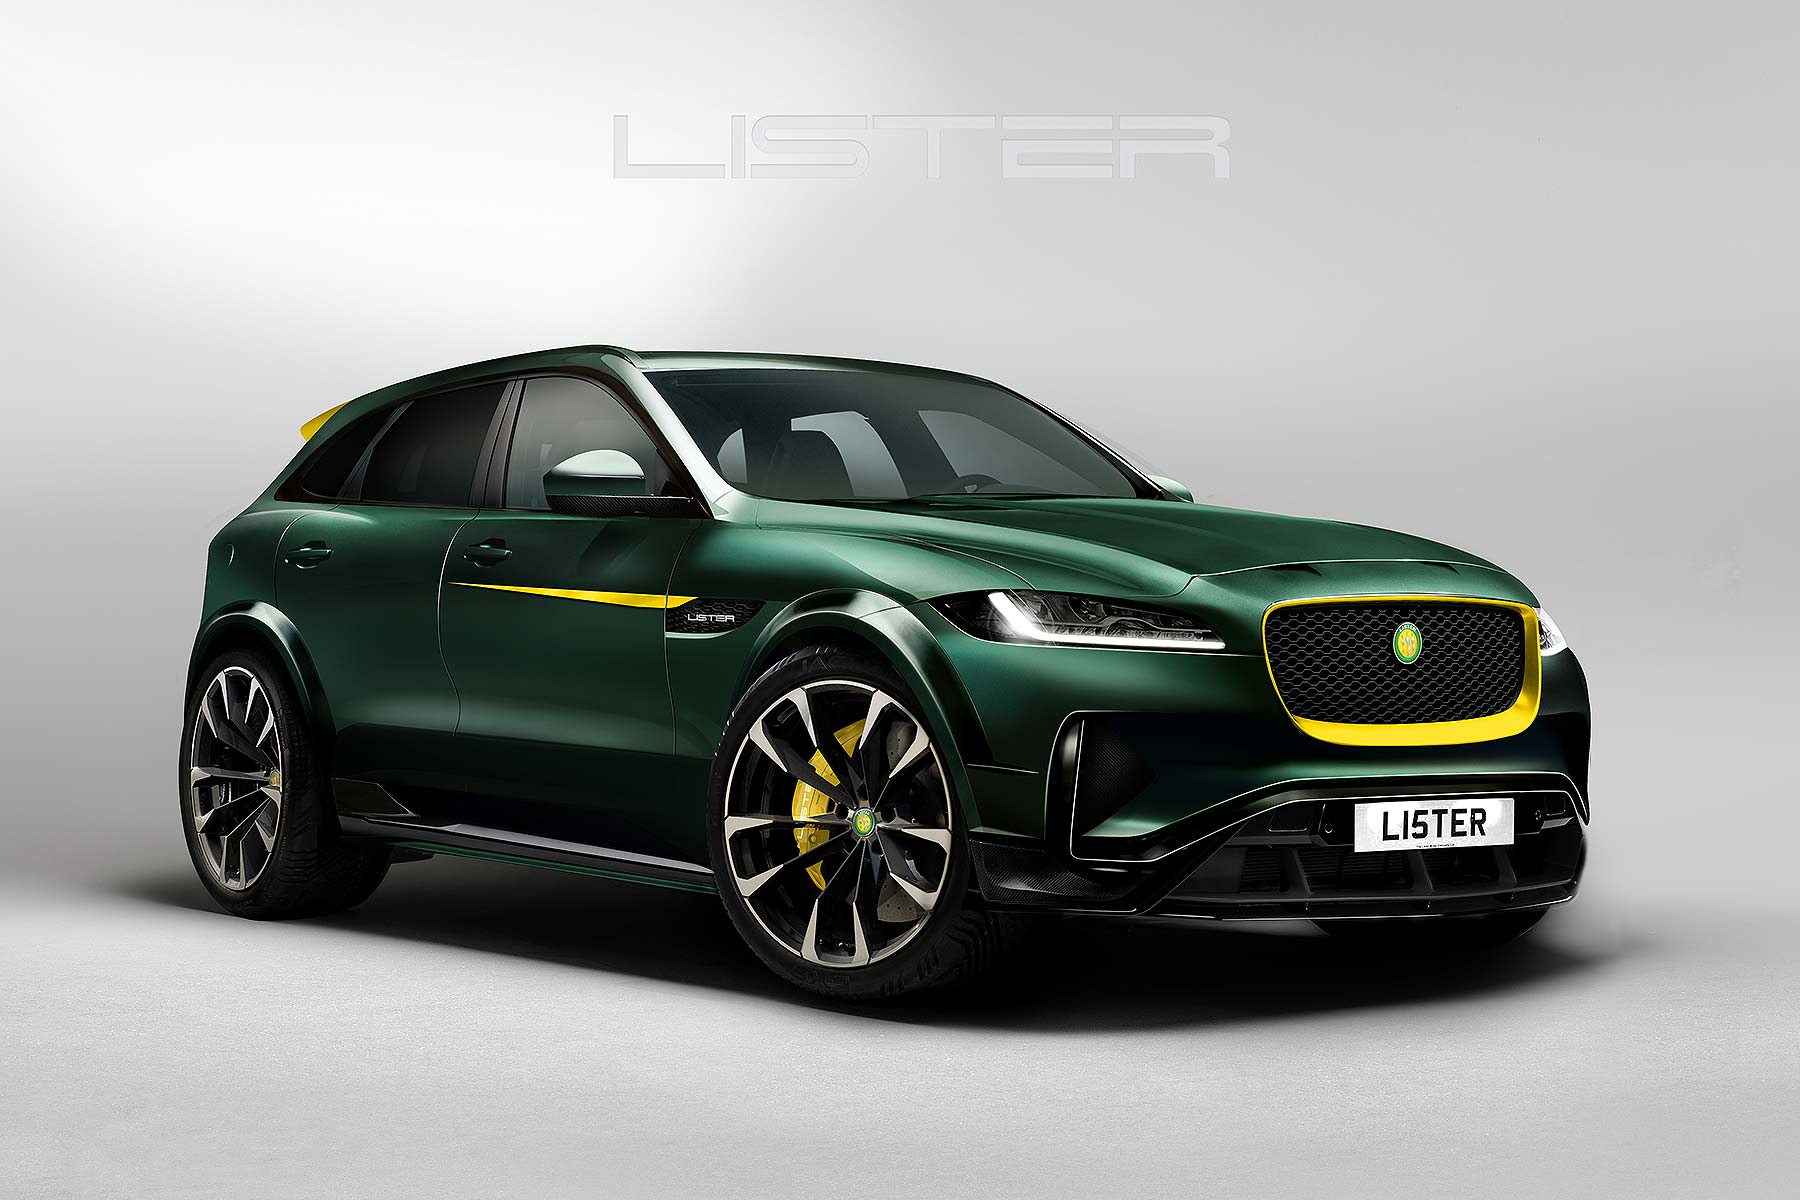 the world 39 s fastest suv will be a 200 mph lister motoring research. Black Bedroom Furniture Sets. Home Design Ideas